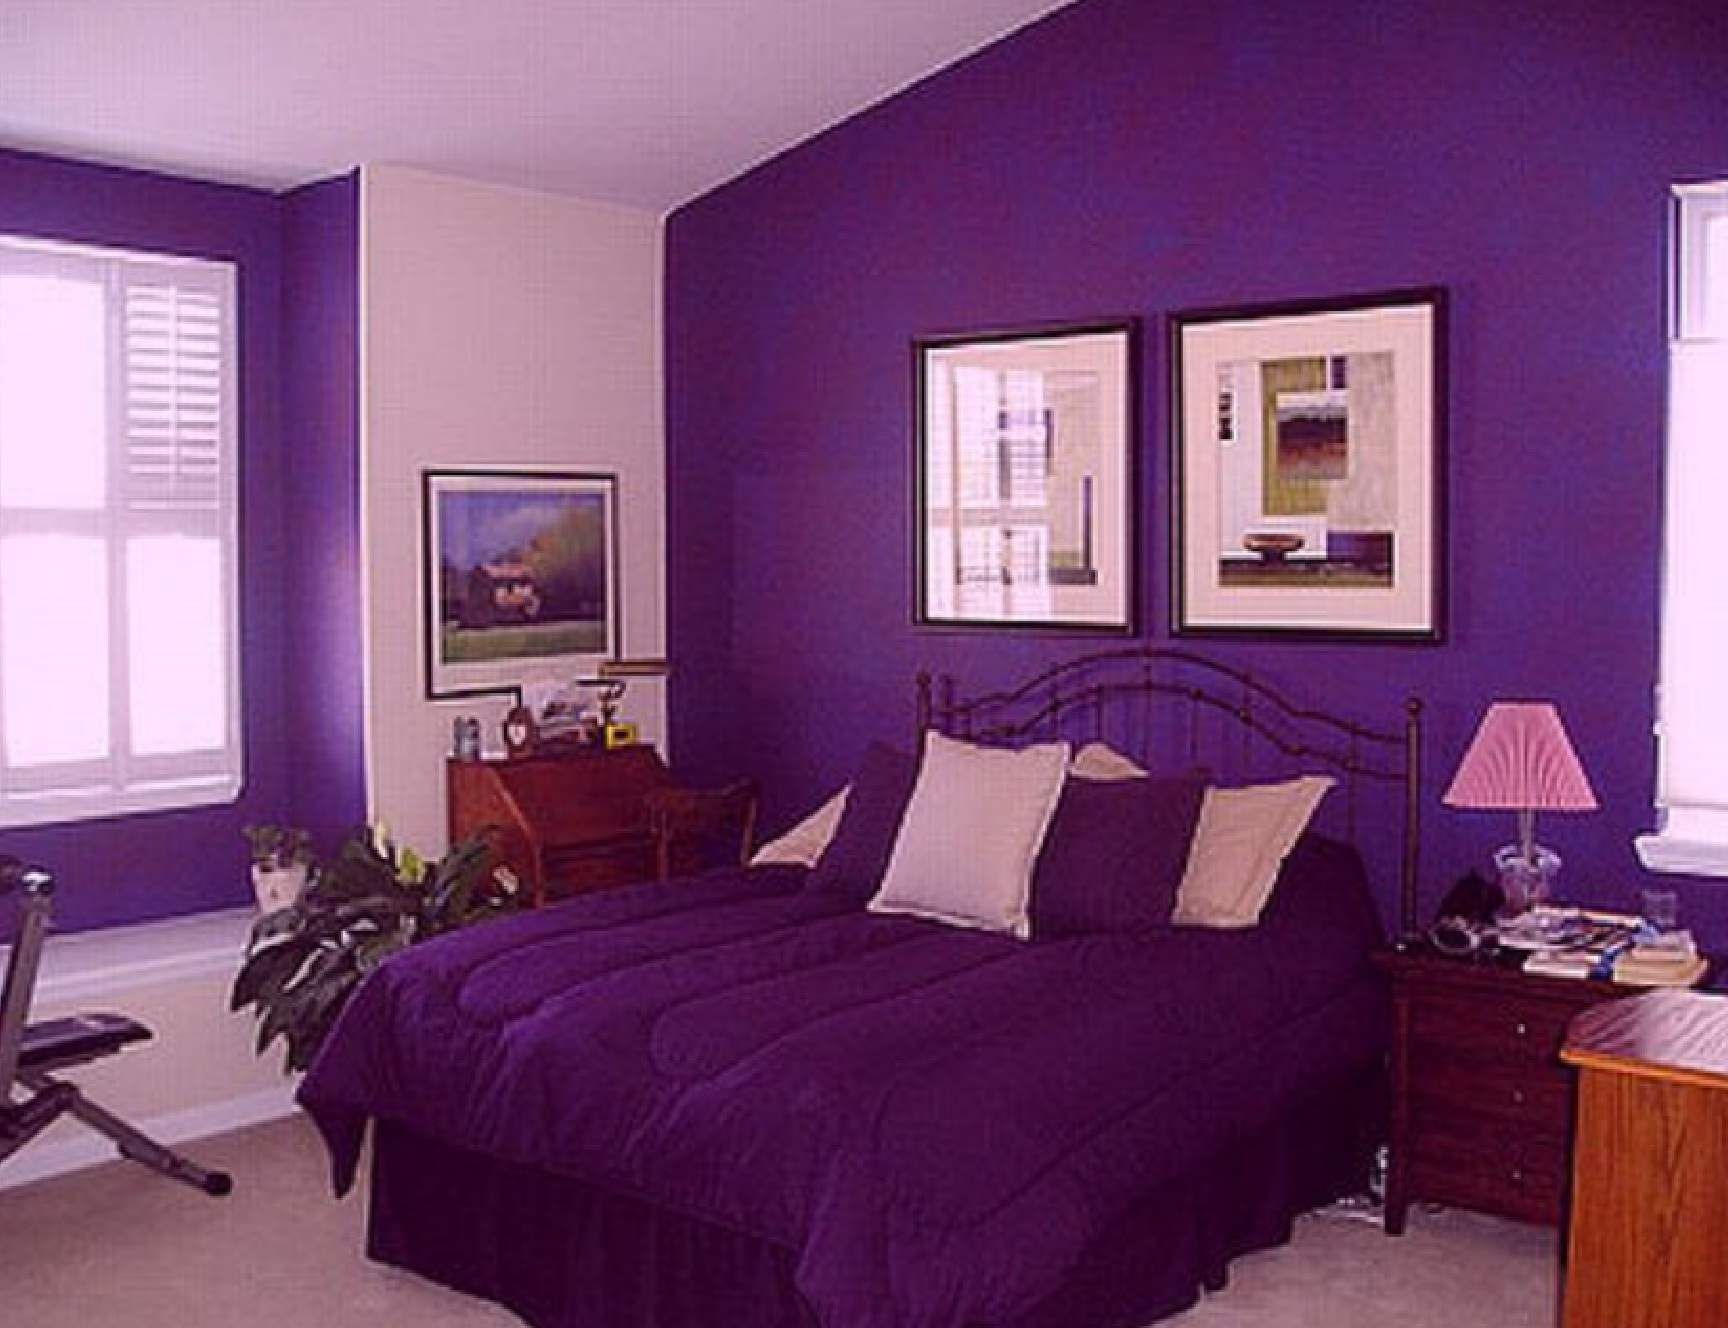 purple bed room ideas | Bedroom, Cute Purple Bedrooms Firmones ... on lilac centerpieces, lilac room ideas, lilac drawing ideas, lilac paint ideas, zebra themed bedroom ideas, desk layout ideas, lilac fabric, lilac nursery ideas, lilac living room, purple room ideas, lilac baby shower, lilac bedroom ideas, lilac weddings, lilac walls, hutch makeover ideas, lilac garden ideas, lilac cakes, butterfly table decoration ideas, lilac bathroom ideas, lilac color,